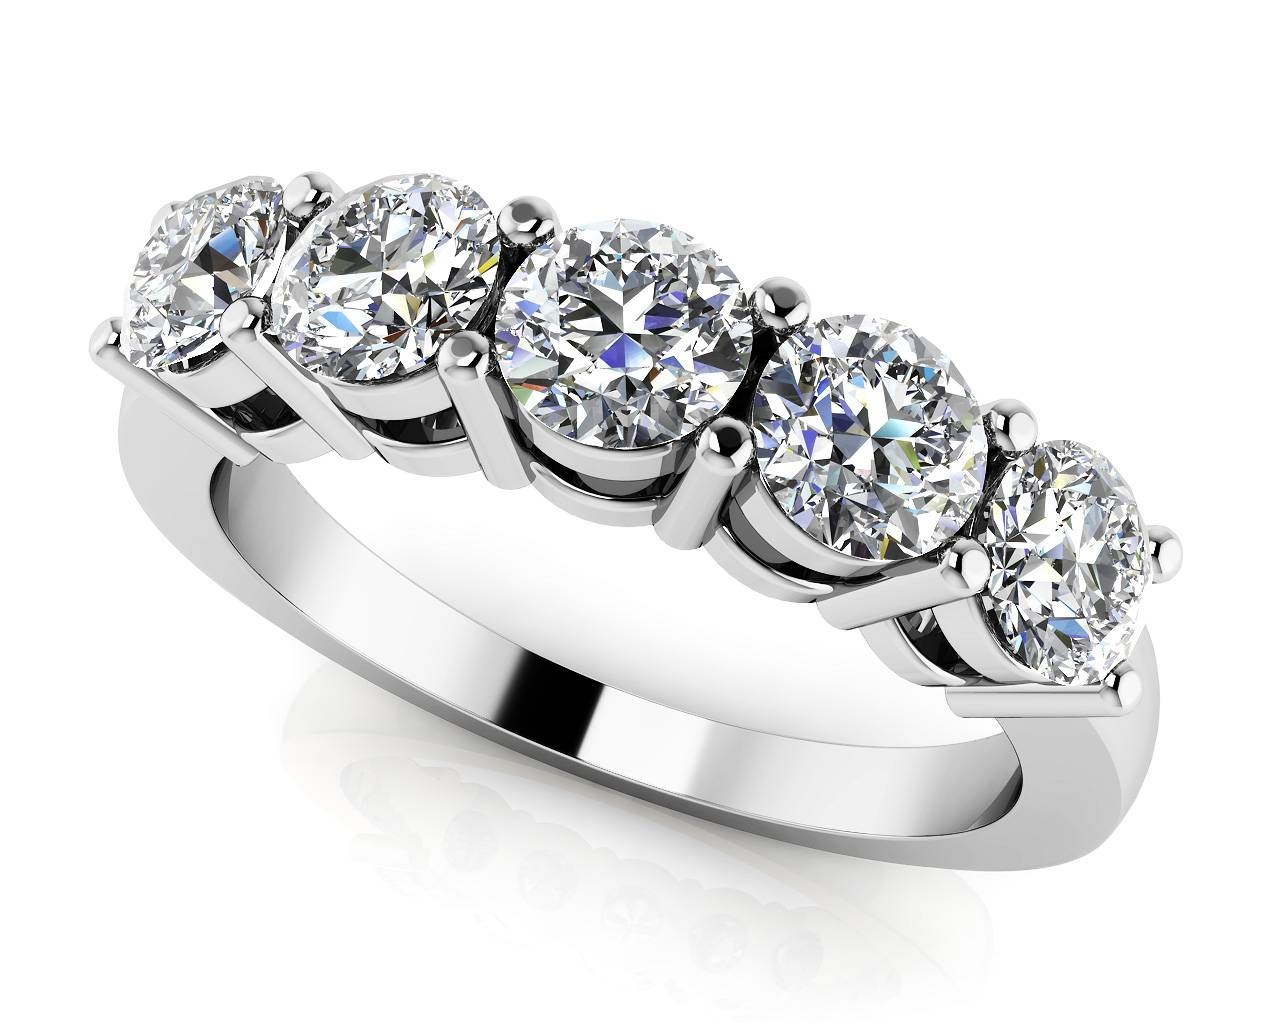 Design Your Own Diamond Anniversary Ring & Eternity Ring With Regard To Best And Newest Anniversary Rings Designs (View 10 of 25)